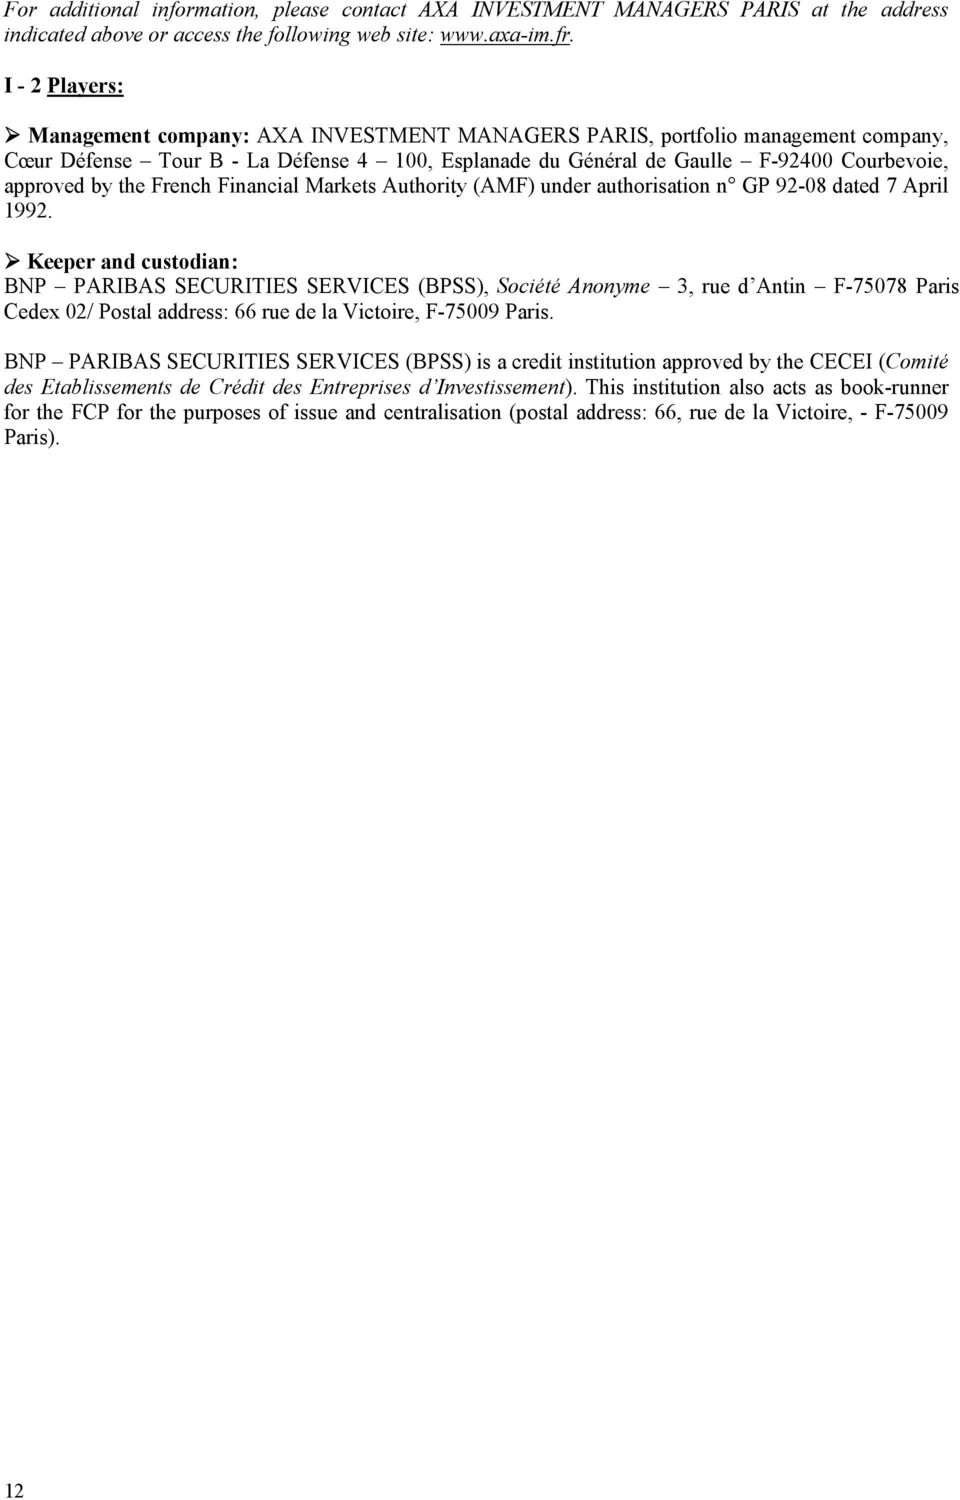 the French Financial Markets Authority (AMF) under authorisation n GP 92-08 dated 7 April 1992.